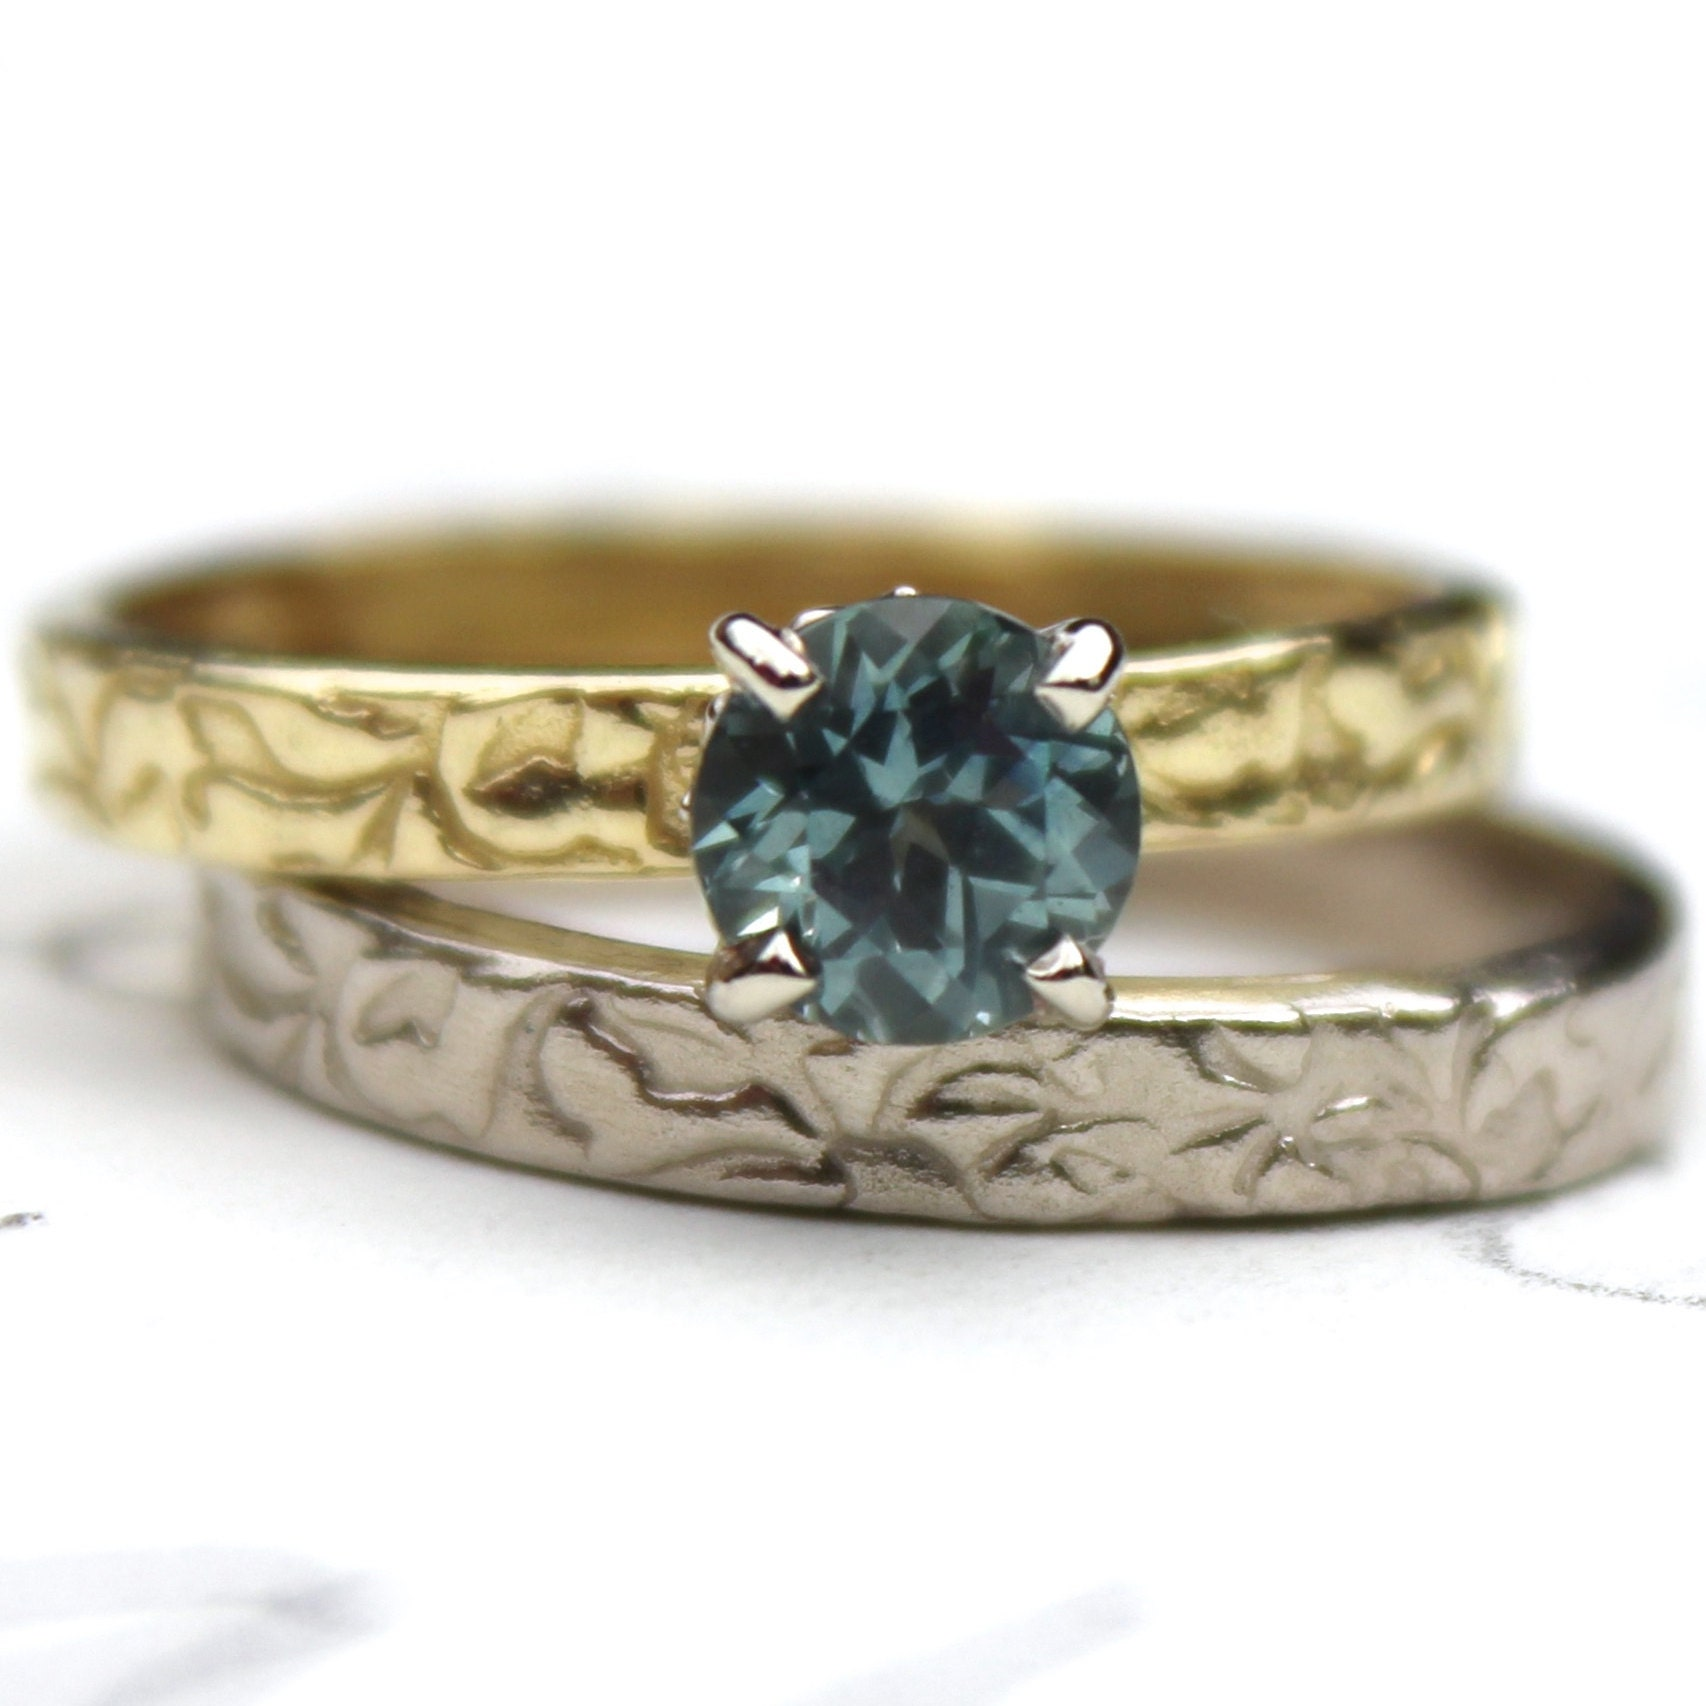 ring wedding rings ouroboros inspired dragon ocean pinterest pin